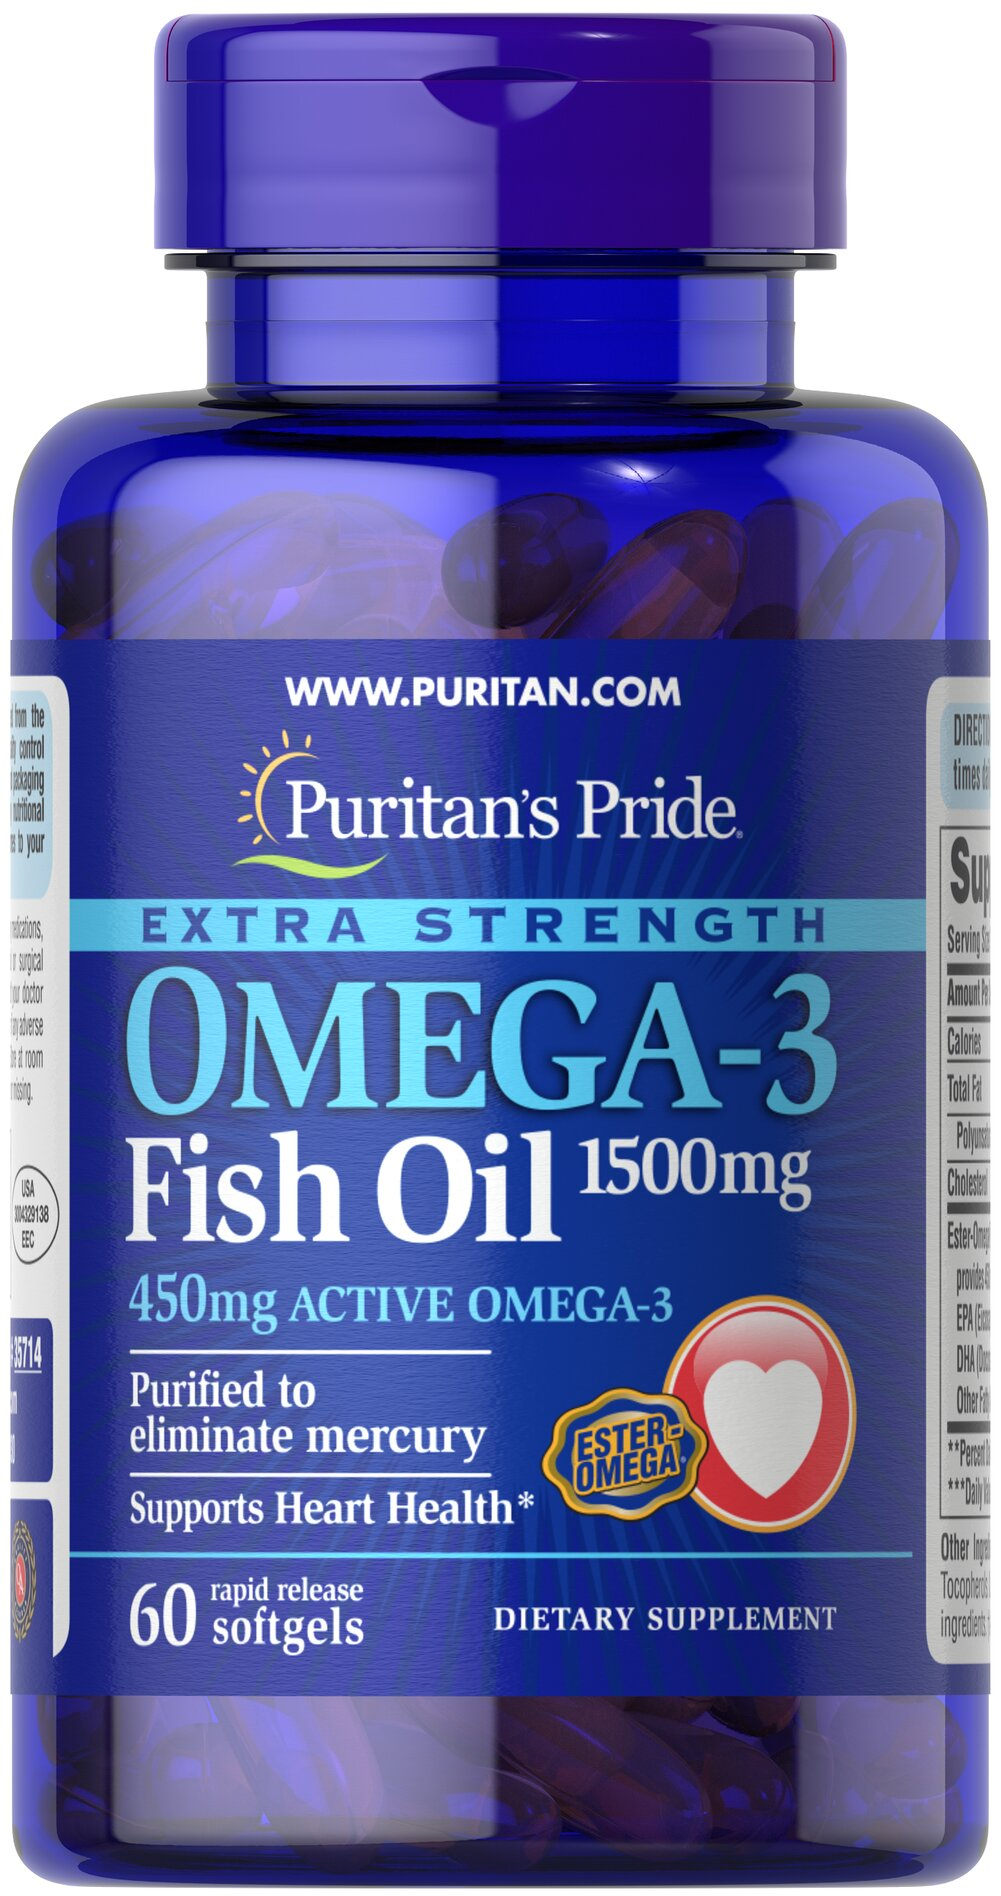 Extra Strength Omega-3 Fish Oil 1500 mg (450 mg Active Omega-3) <p><strong>Purified to Eliminate Mercury</strong></p><p>Super Potency 1500 mg  in one softgel!</p><p>Contains 450 mg of active Omega-3 per softgel.</p><p>Features fish oil in rapid-release softgels with enhanced potency and superior absorption.**</p> 60 Softgels 1500 mg $13.99